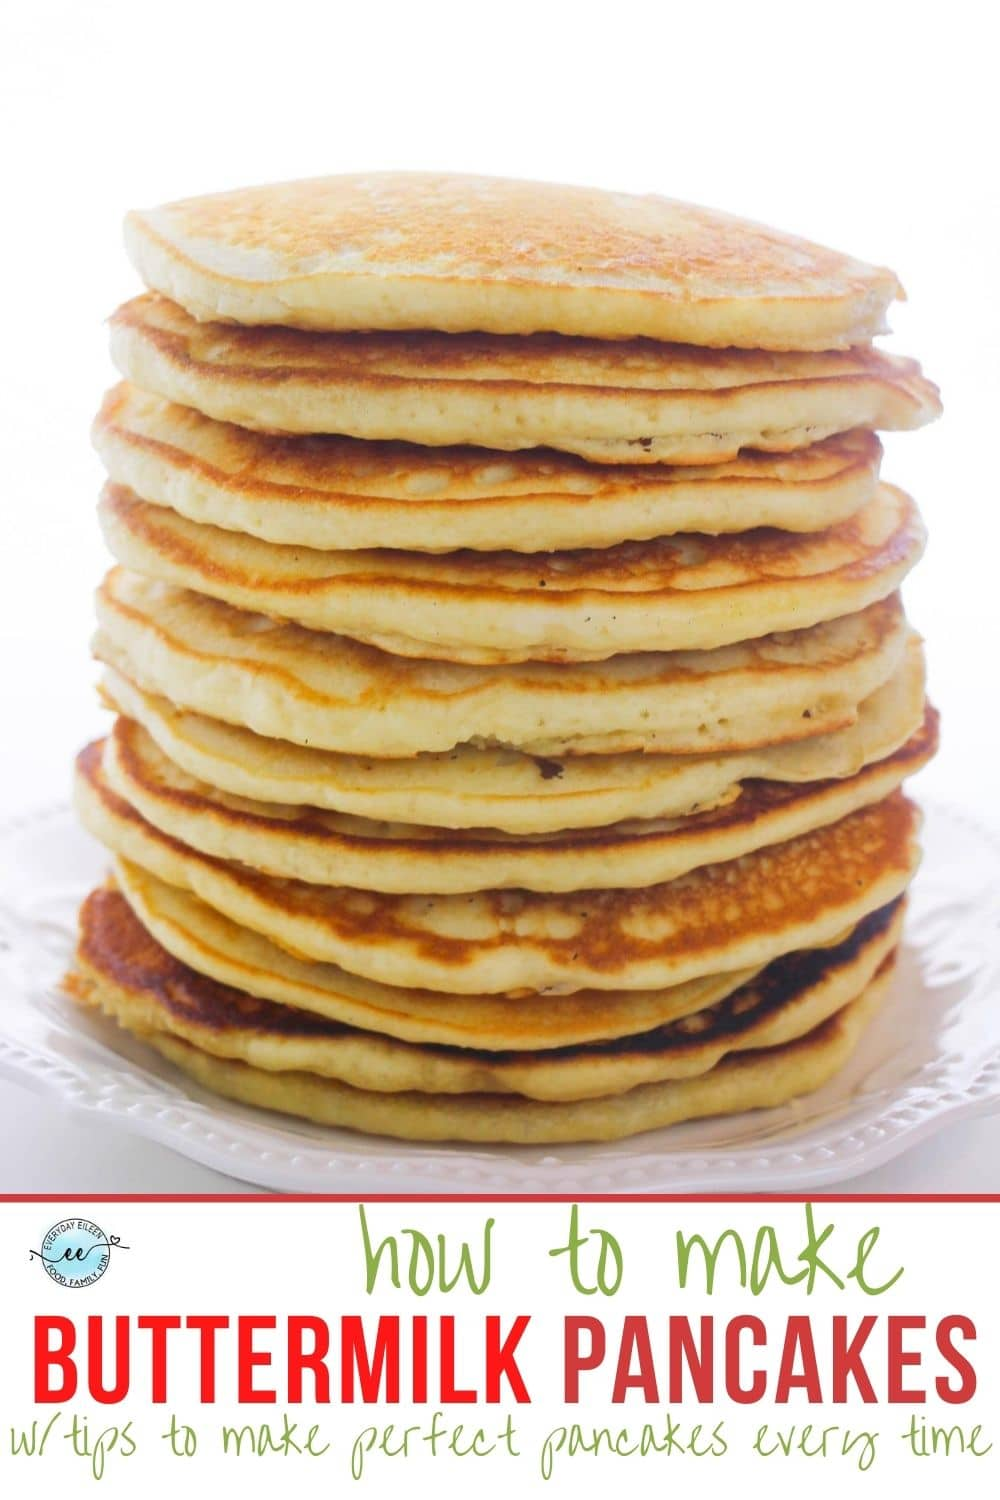 Enjoy these homemade, from scratch, light, and airy fluffy buttermilk pancakes. They'll blow away any box made pancake and they are super easy to prepare. They freeze well so make a double batch. Easy step by step instructions for the best pancakes every time. Add in your favorite berries or chocolate chips. #buttermilkpancakes #fluffybuttermilkpancakes #pancakerecipe via @/everydayeileen/